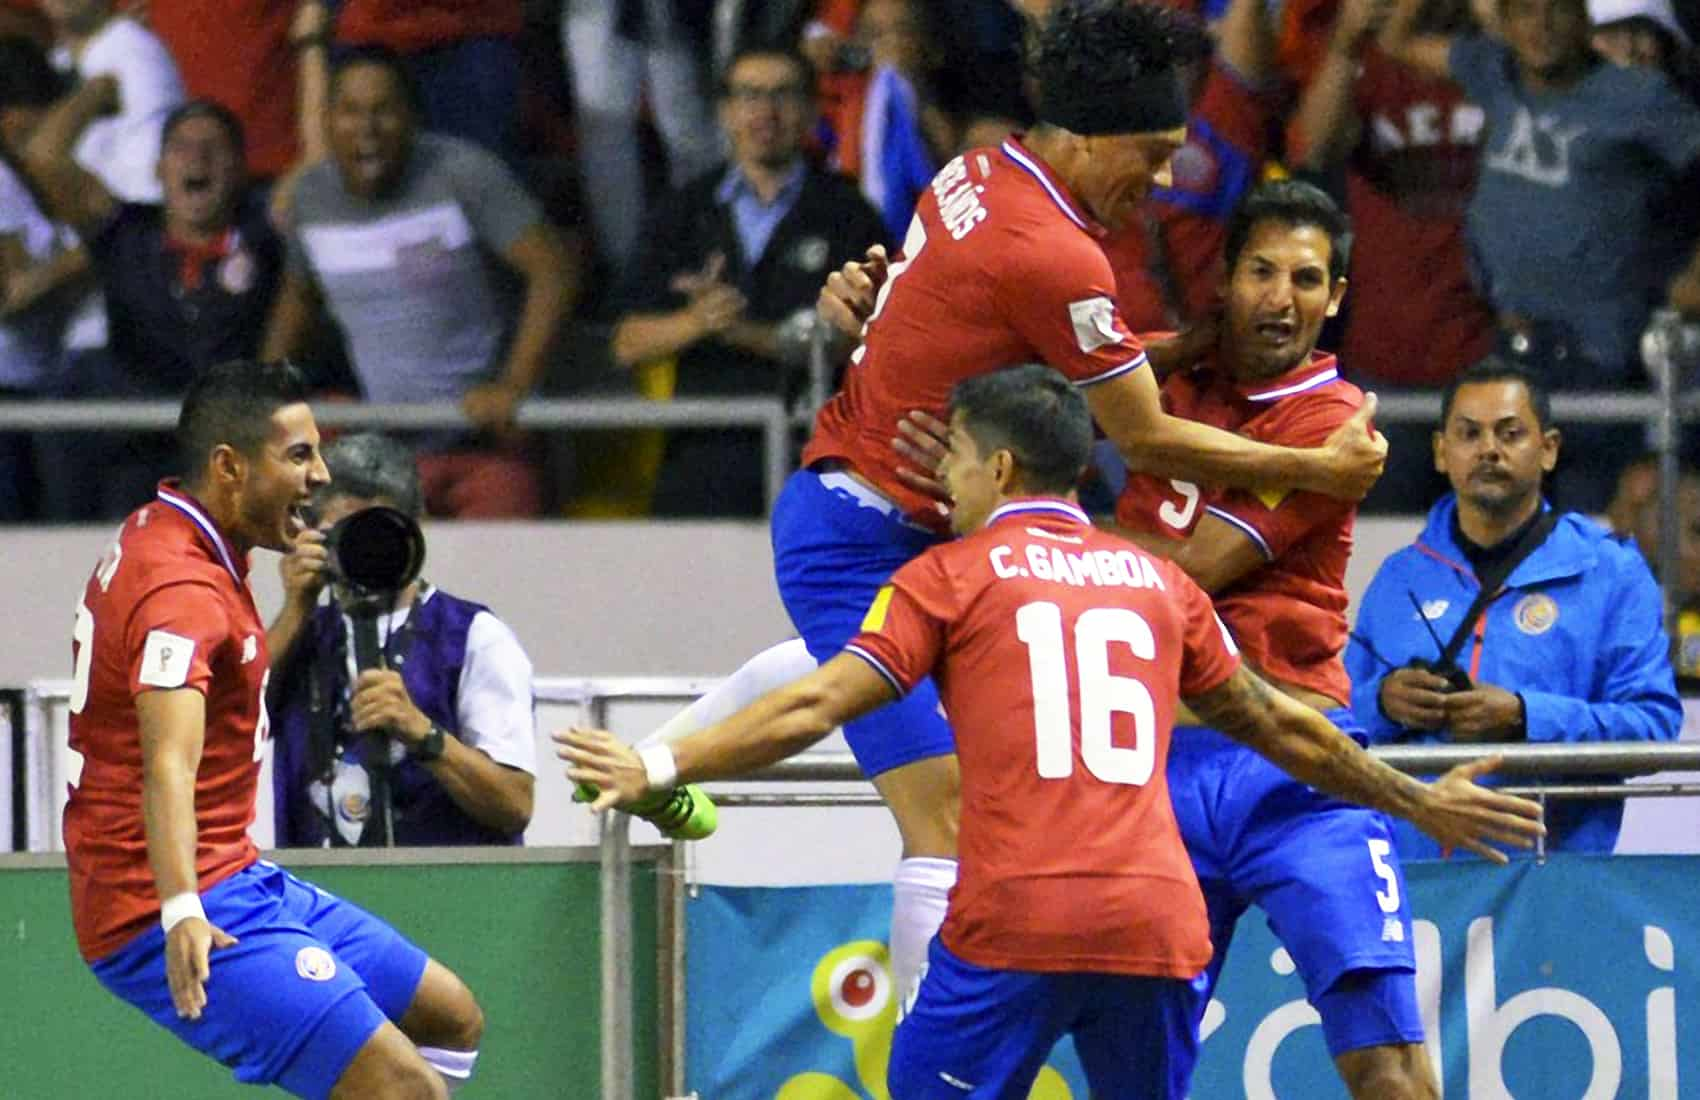 Costa Rica's National Football Team. La Sele